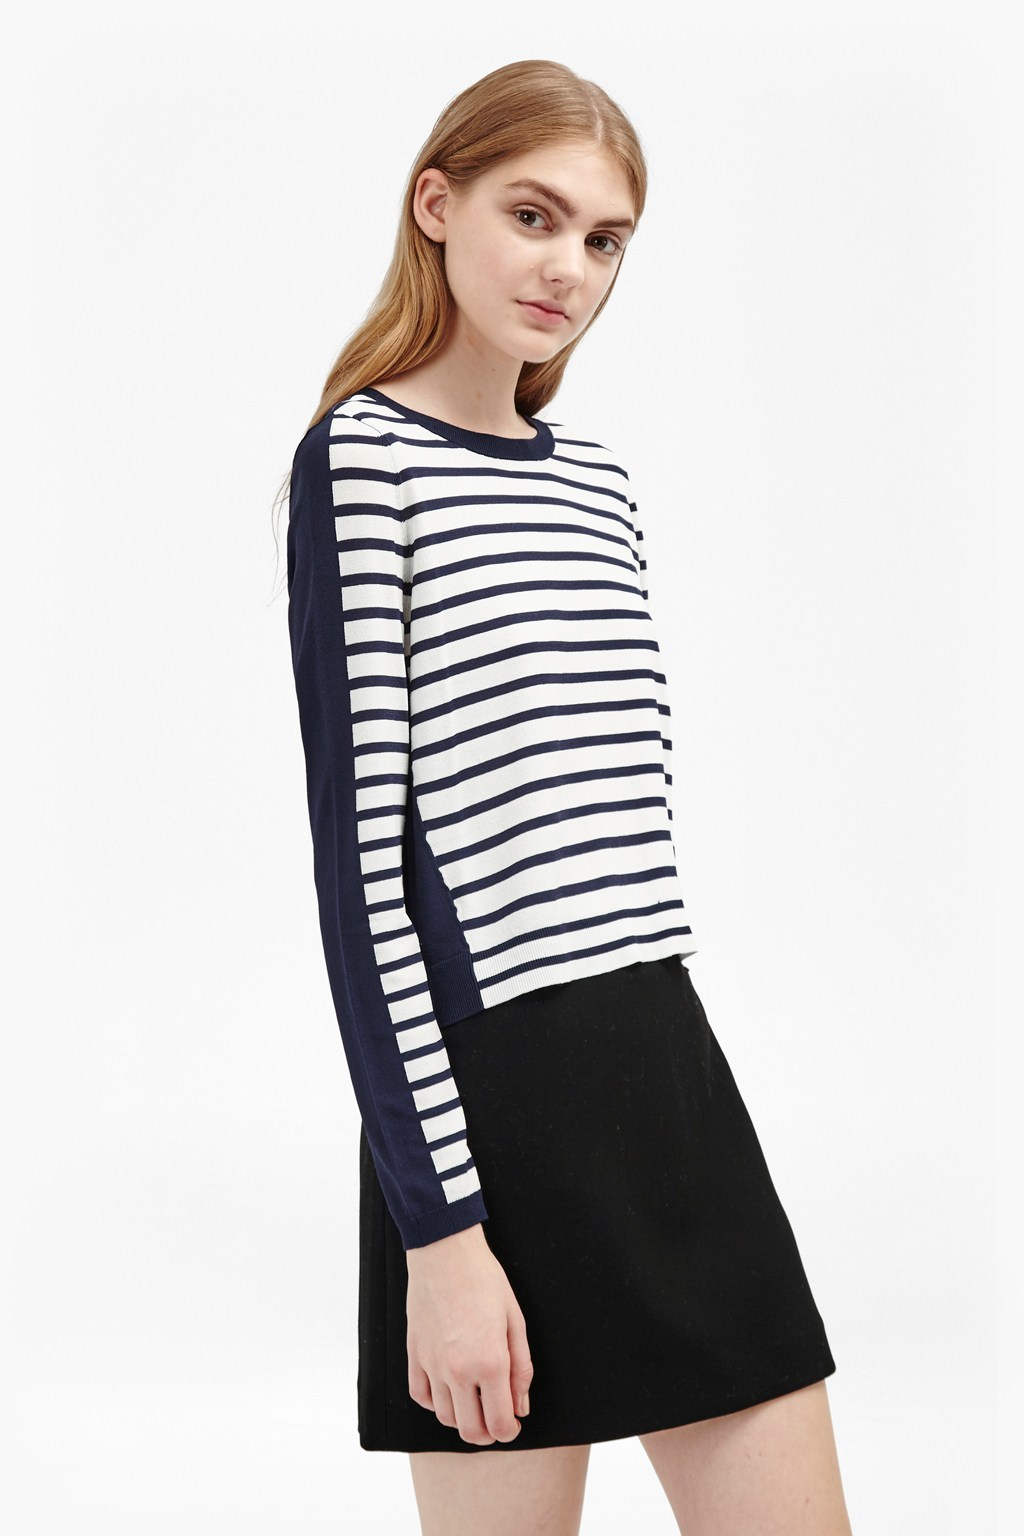 Cass Knits Stripe Jumper Nocturnal/Winter White - pattern: horizontal stripes; style: standard; predominant colour: white; secondary colour: black; occasions: casual; length: standard; fit: standard fit; neckline: crew; sleeve length: long sleeve; sleeve style: standard; texture group: knits/crochet; pattern type: fabric; fibres: viscose/rayon - mix; season: a/w 2016; wardrobe: highlight